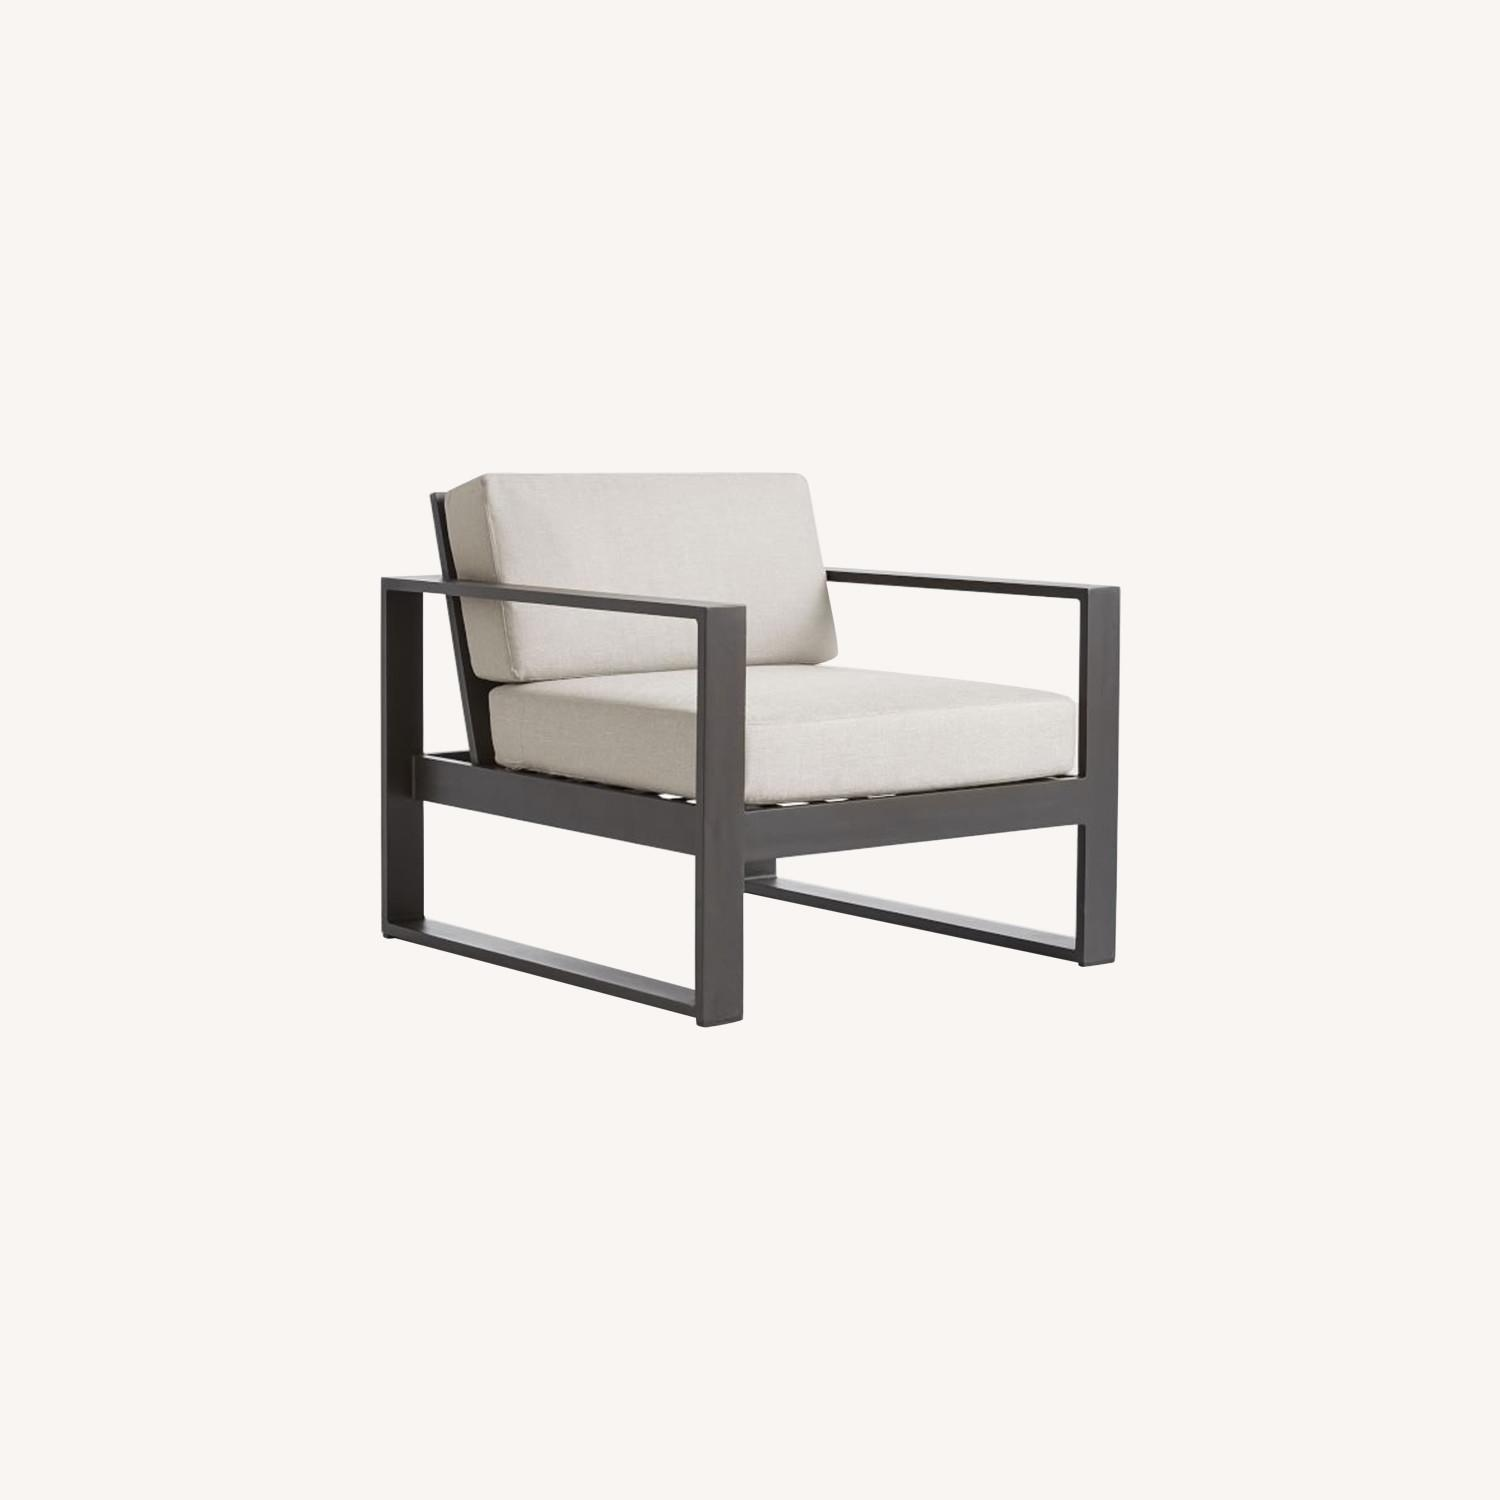 West Elm Portside Aluminum Outdoor Lounge Chair - image-0